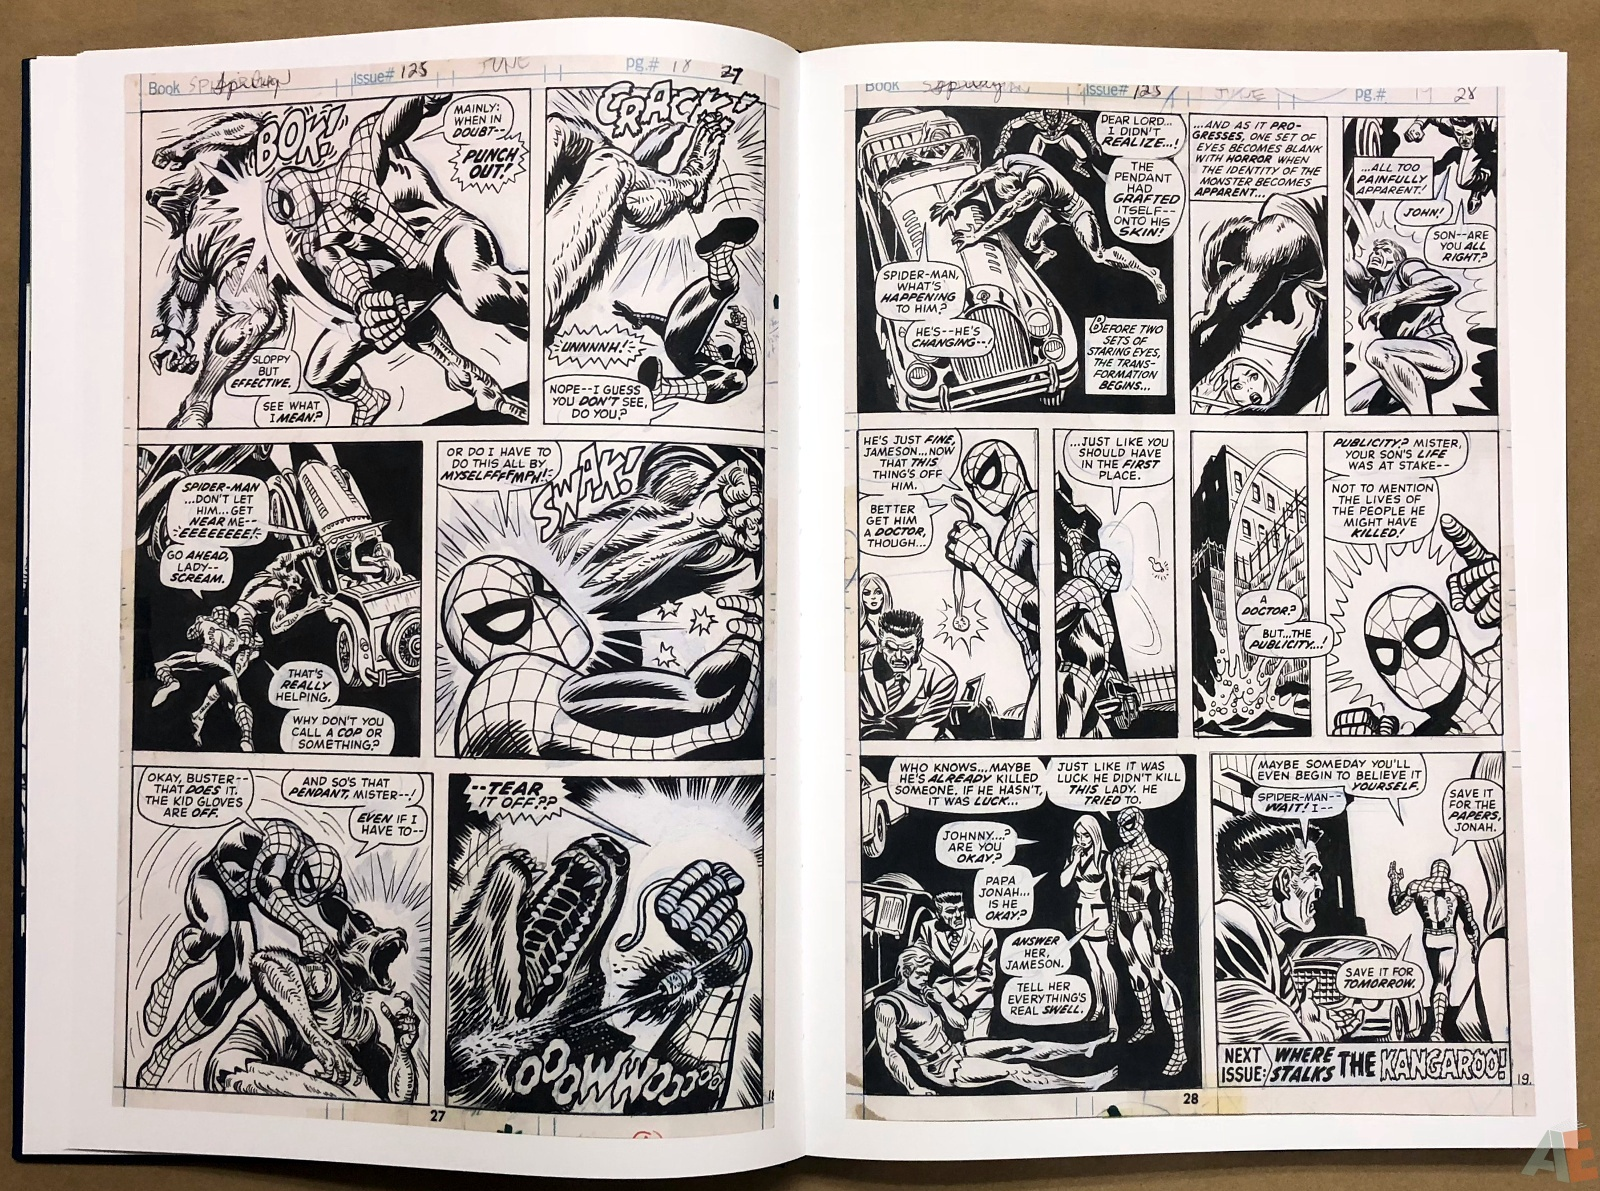 Ross Andru's The Amazing Spider-Man Artist's Edition 14